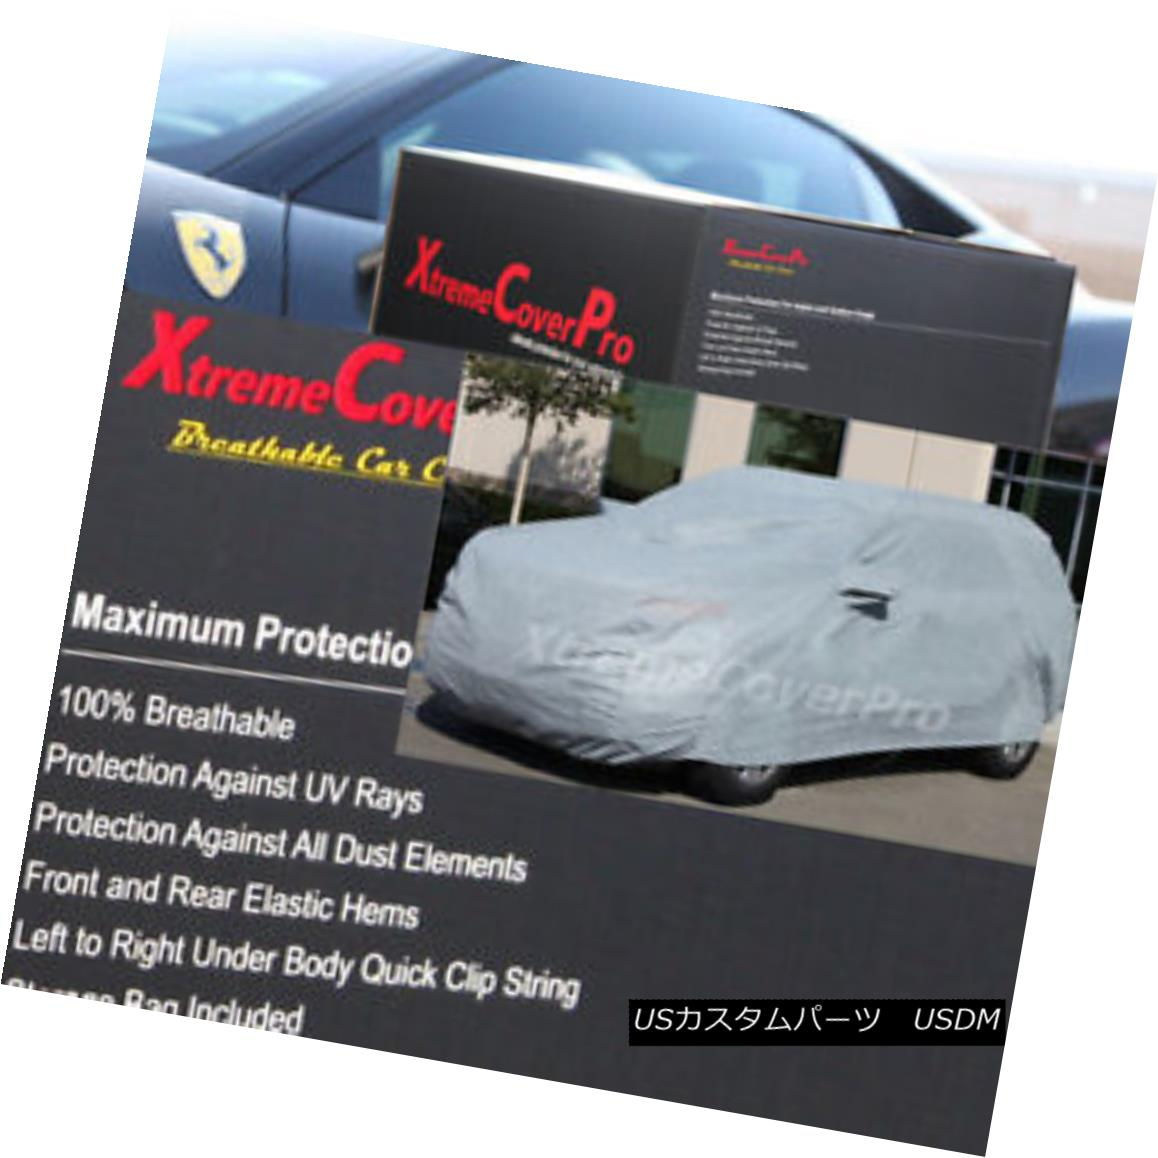 カーカバー 1996 1997 1998 Oldsmobile Bravada Breathable Car Cover w/MirrorPocket 1996年1997年1998年Oldsmobile Bravada通気性車カバー付き/ MirrorPocket